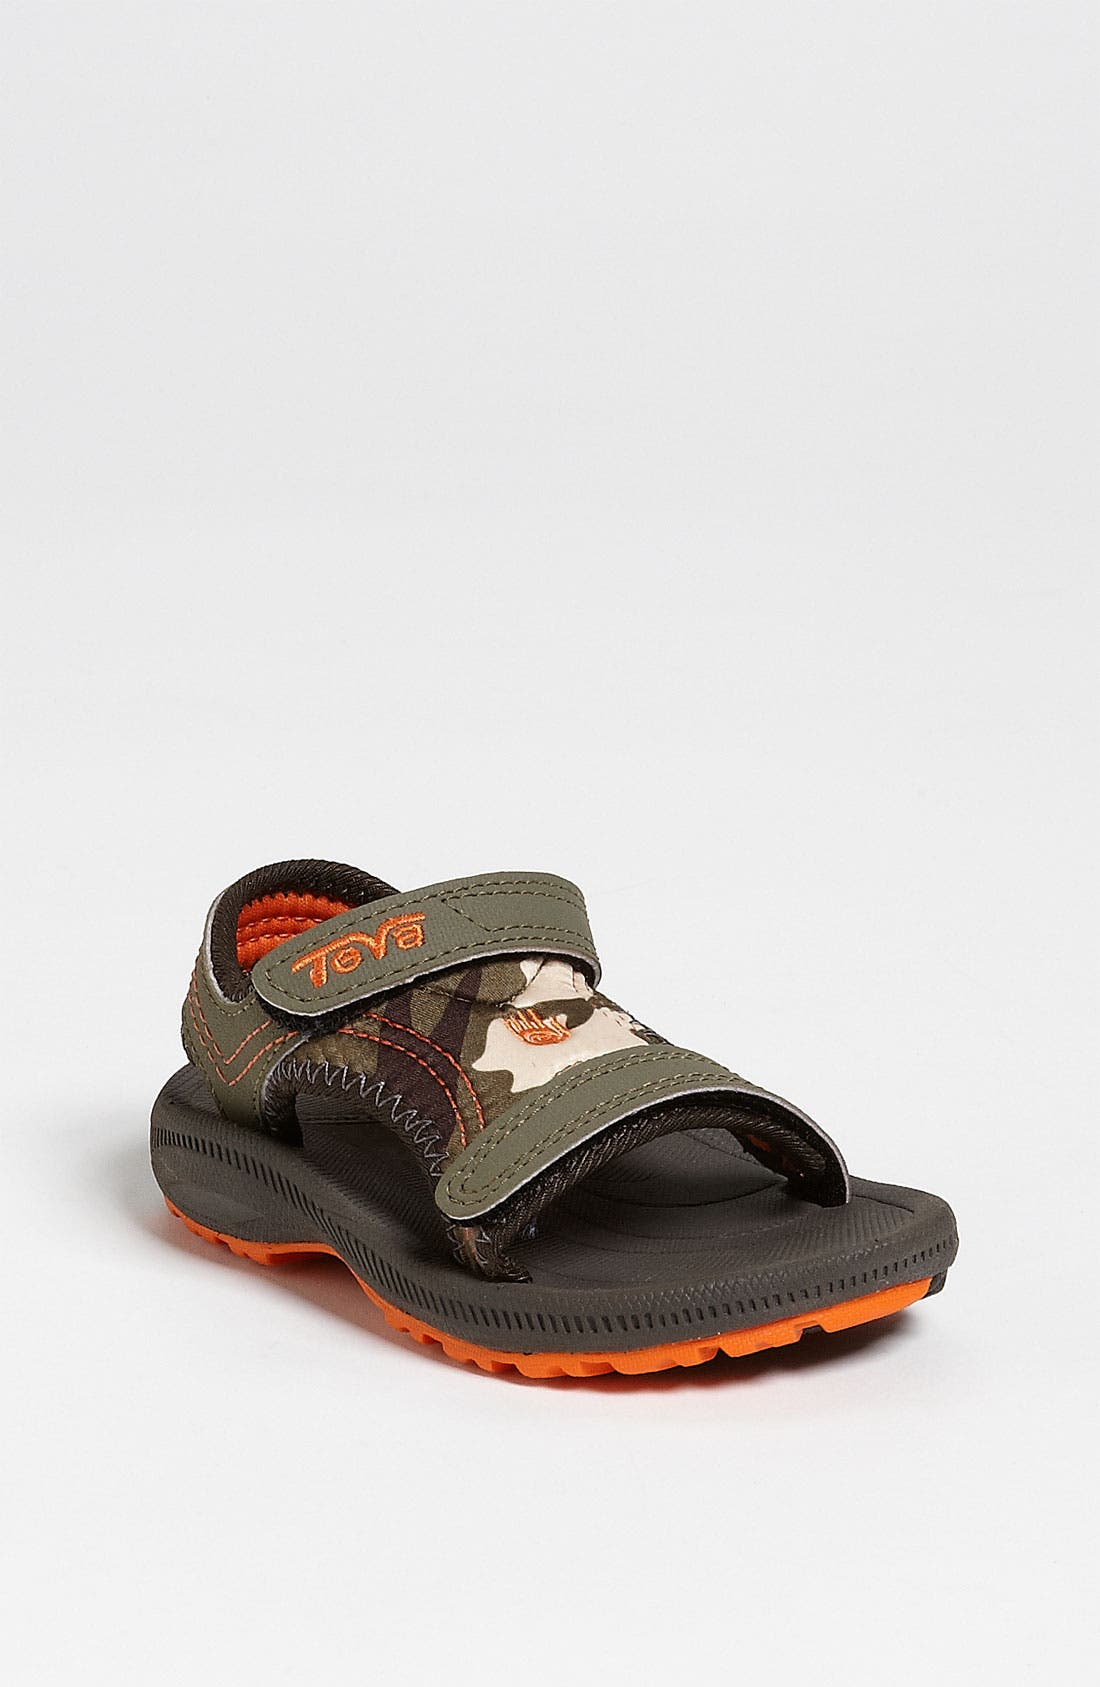 Alternate Image 1 Selected - Teva 'Psyclone' Print Sandal (Baby, Walker & Toddler)